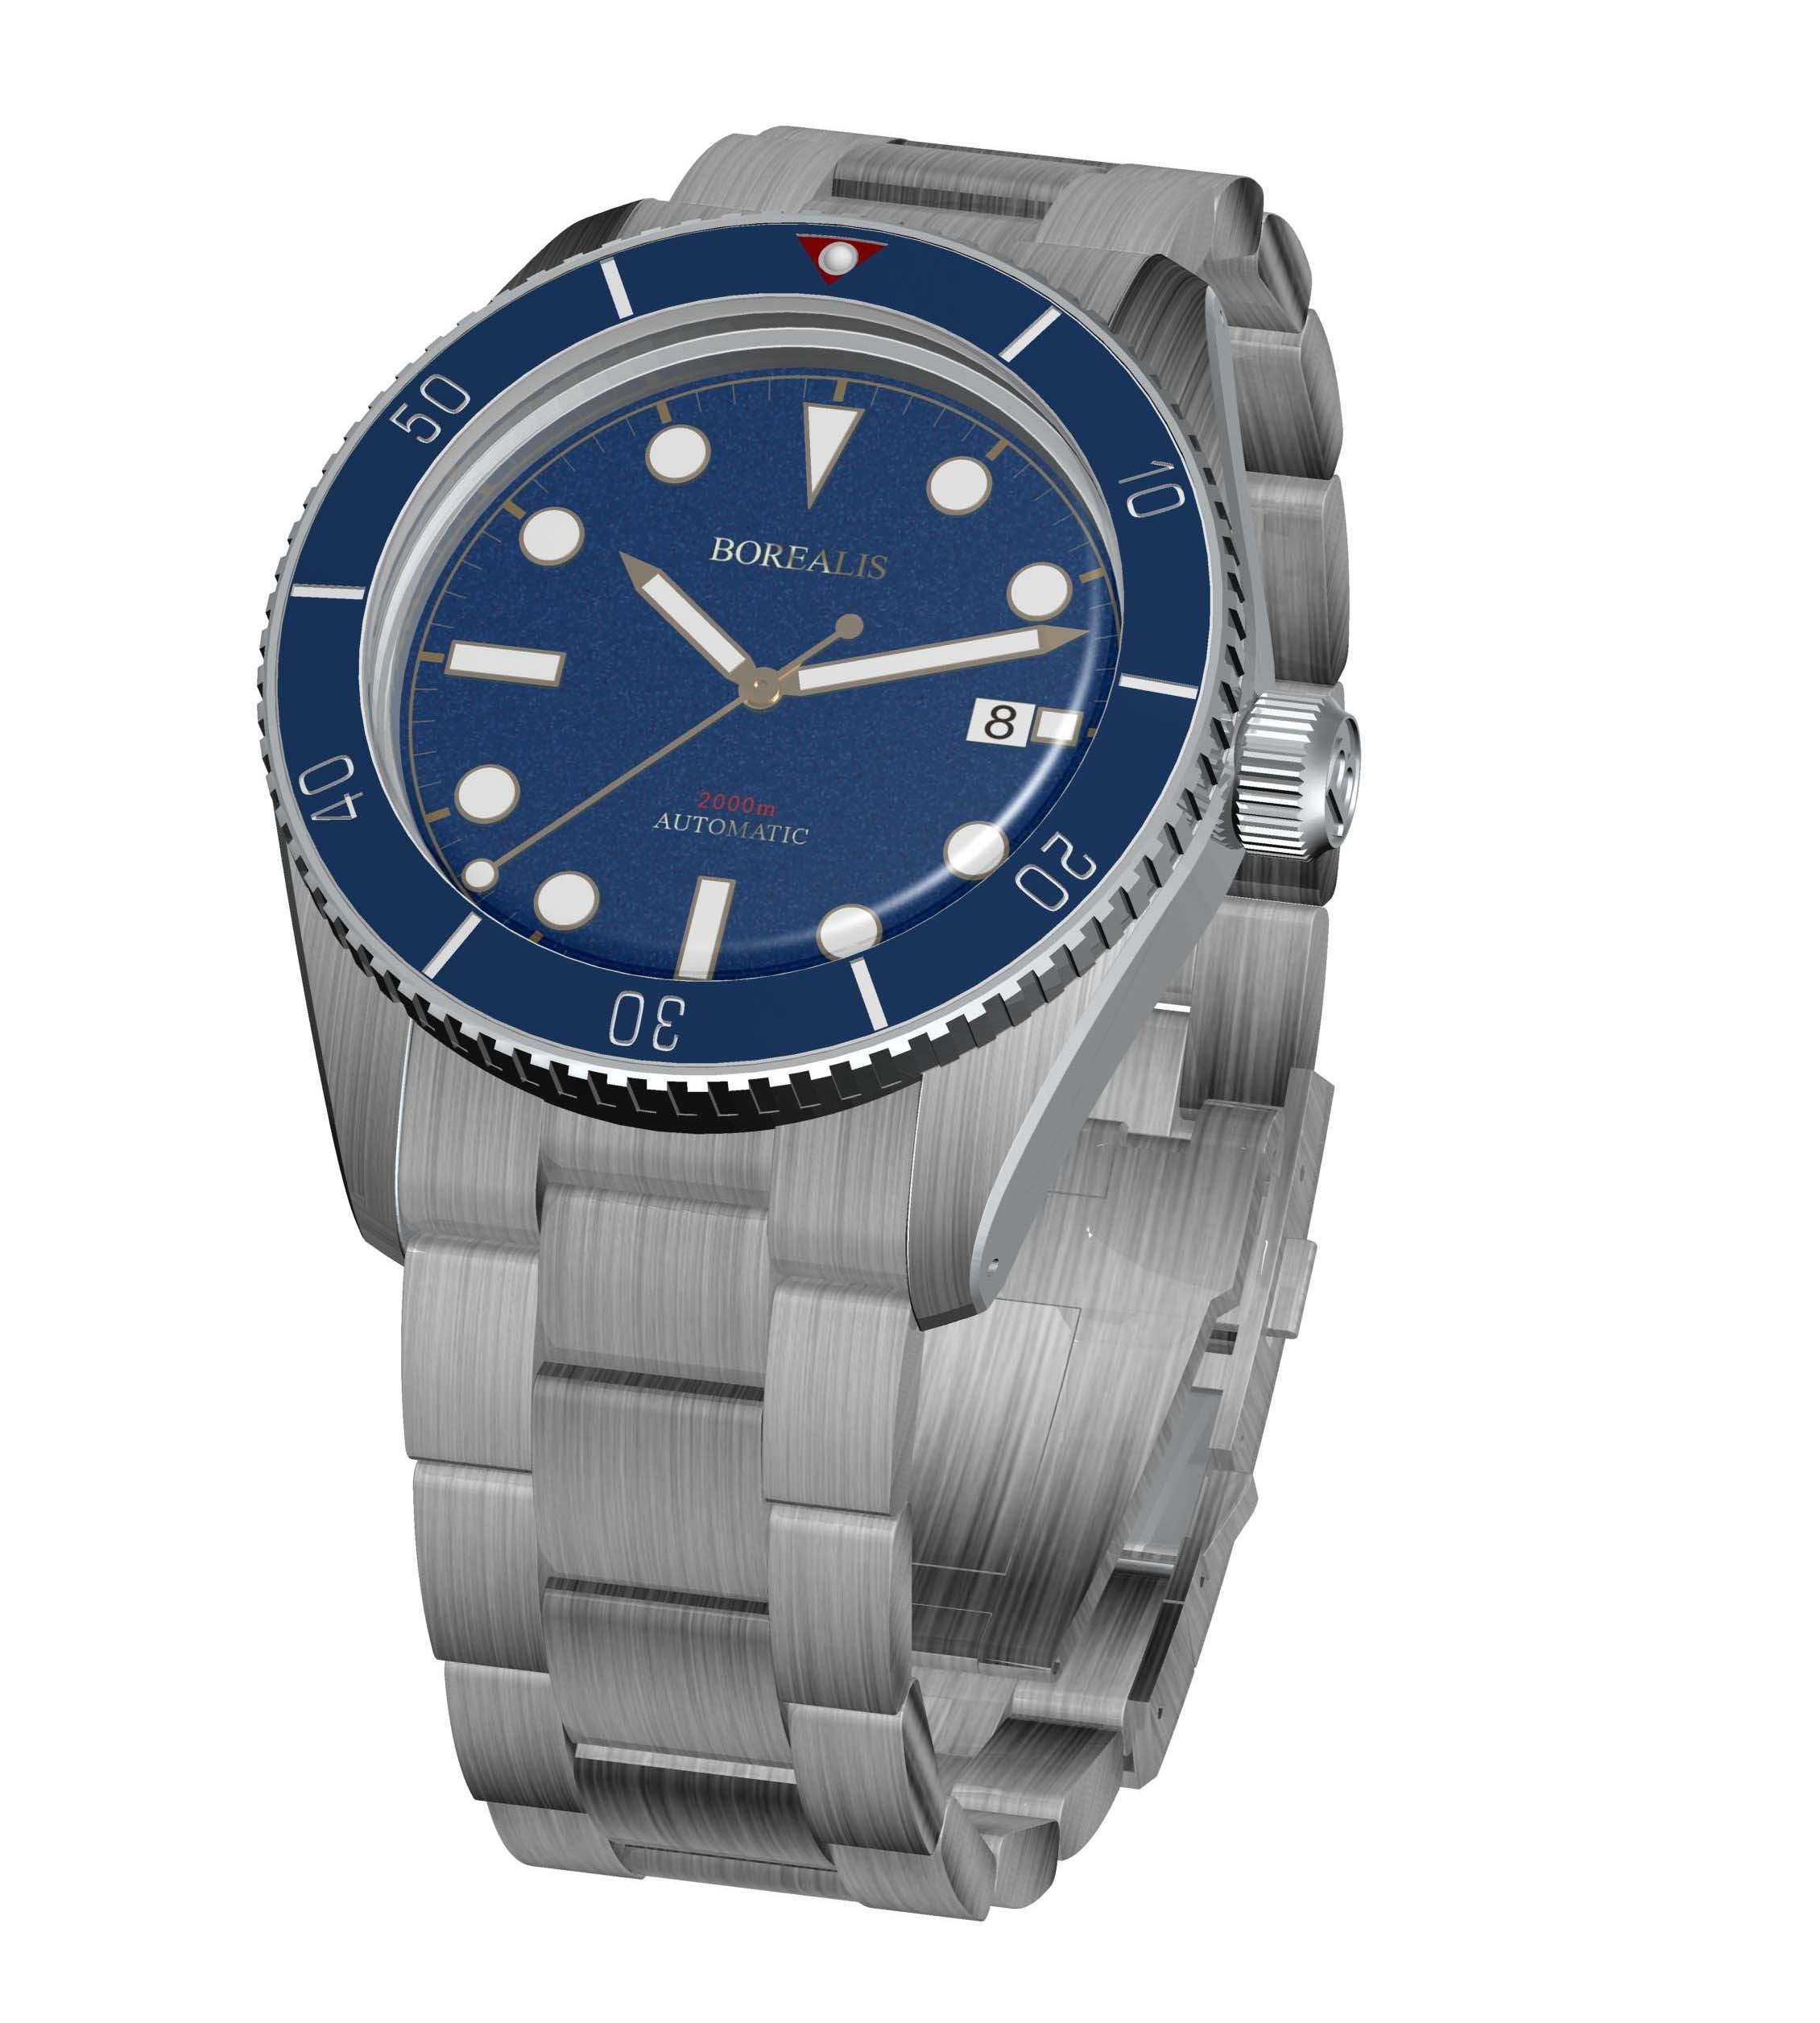 Borealis Bull Shark Automatic Diver Watch Date Miyota 9015 Ceramic Blue Bezel Blue Dial